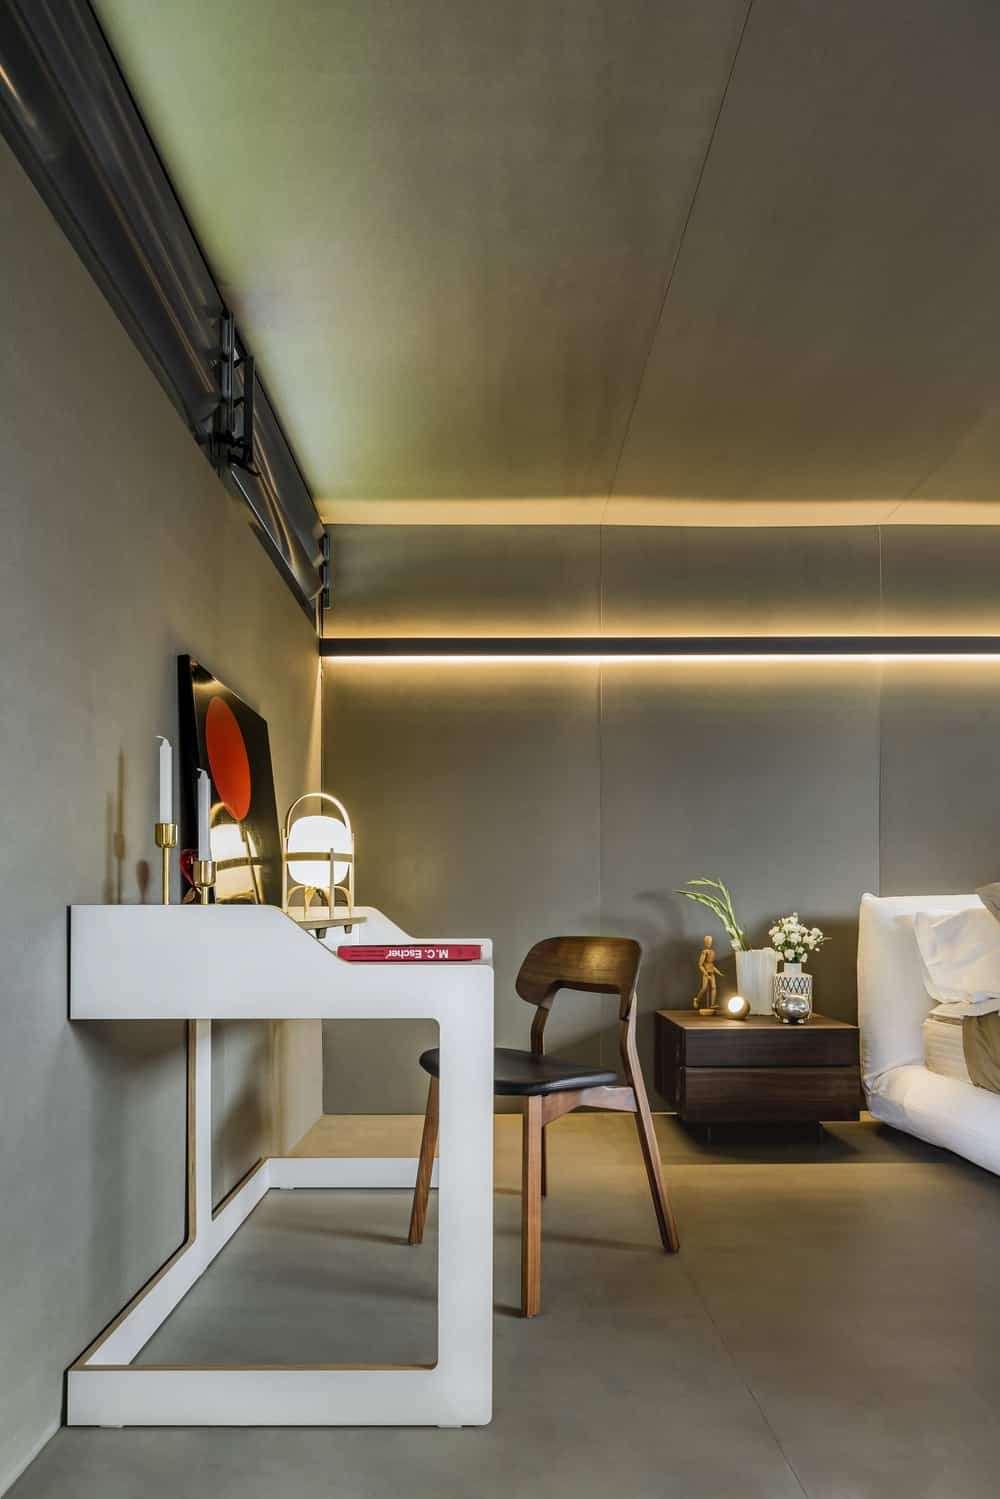 This is a close look at the vanity and study area with a white vanity and study table paired with a wooden chair.